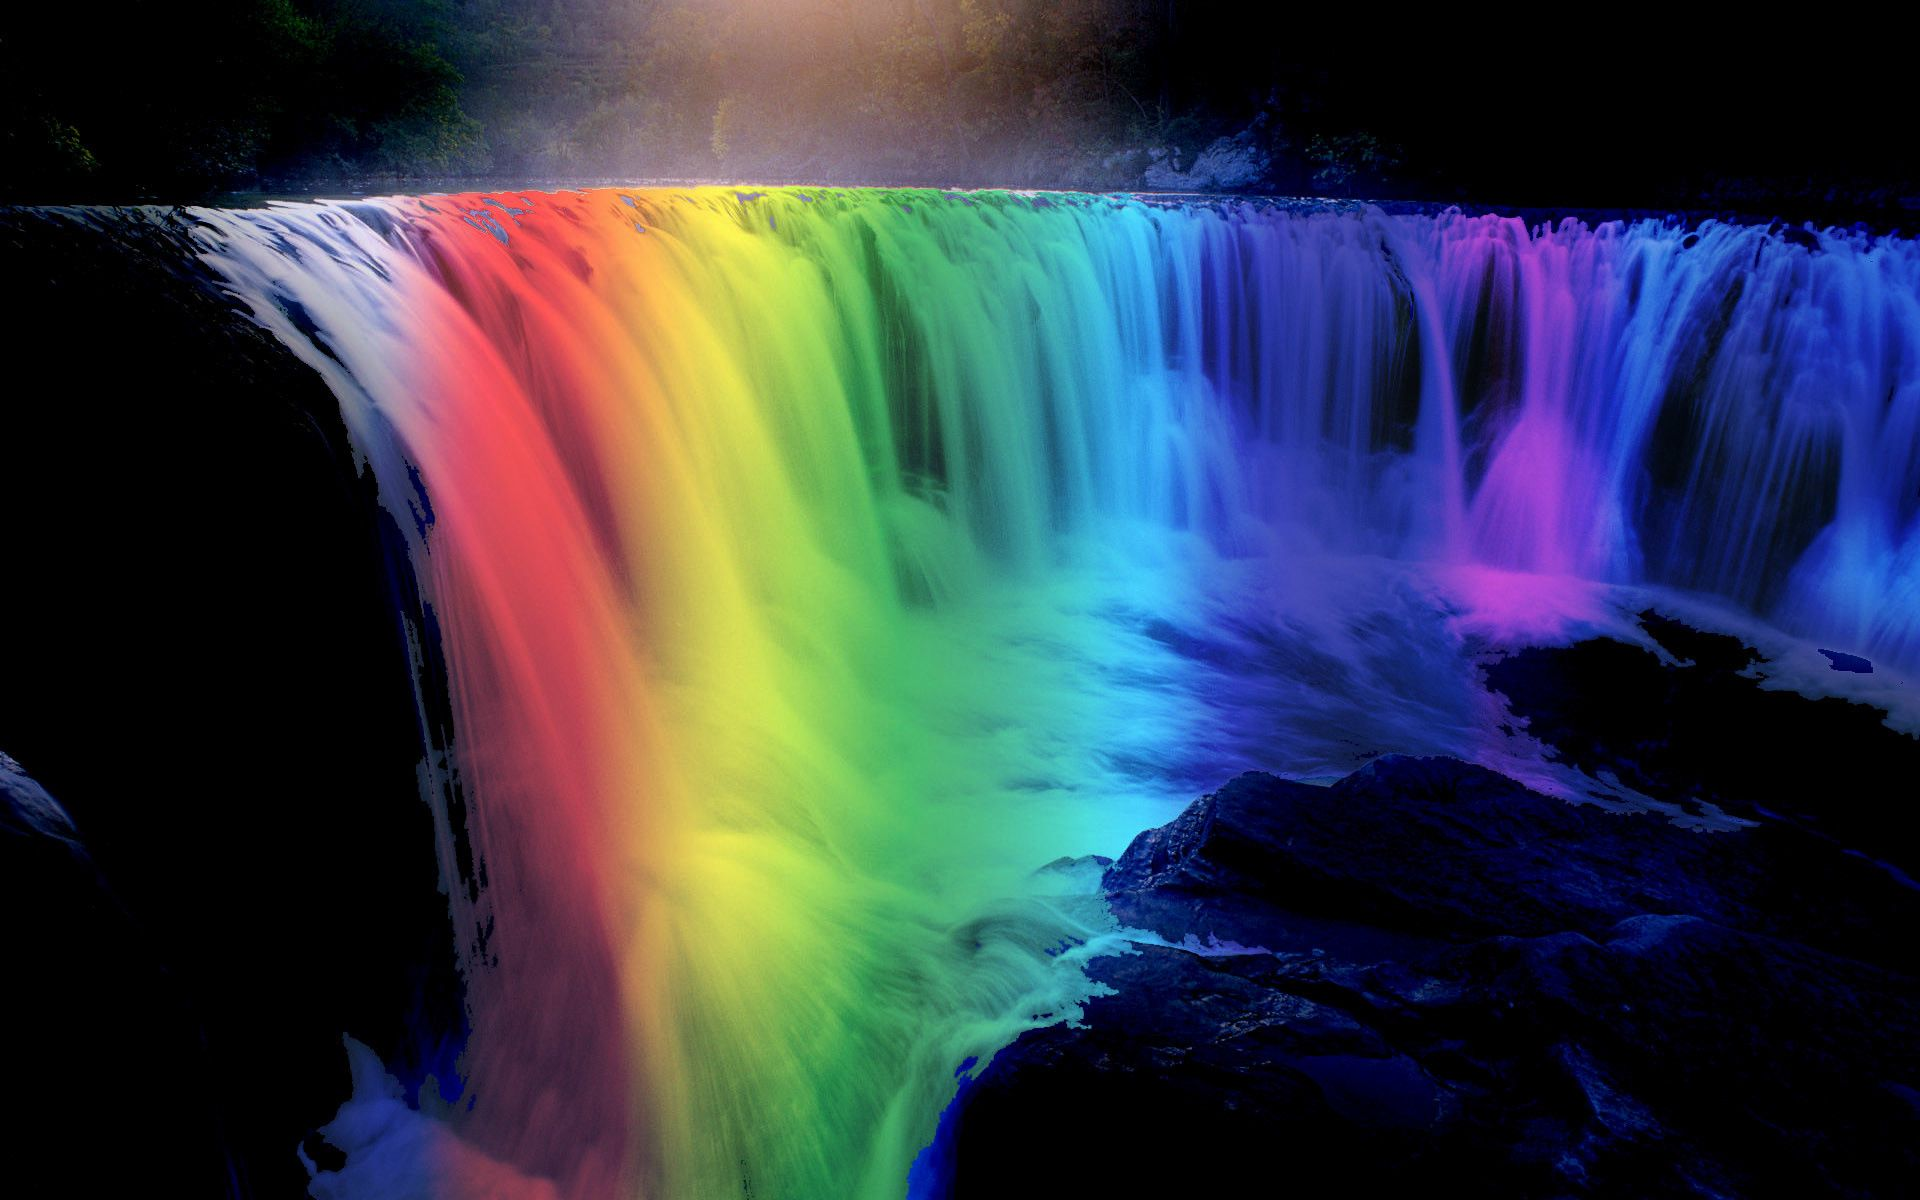 Aesthetic Rainbow Wallpapers - Top Free Aesthetic Rainbow ...